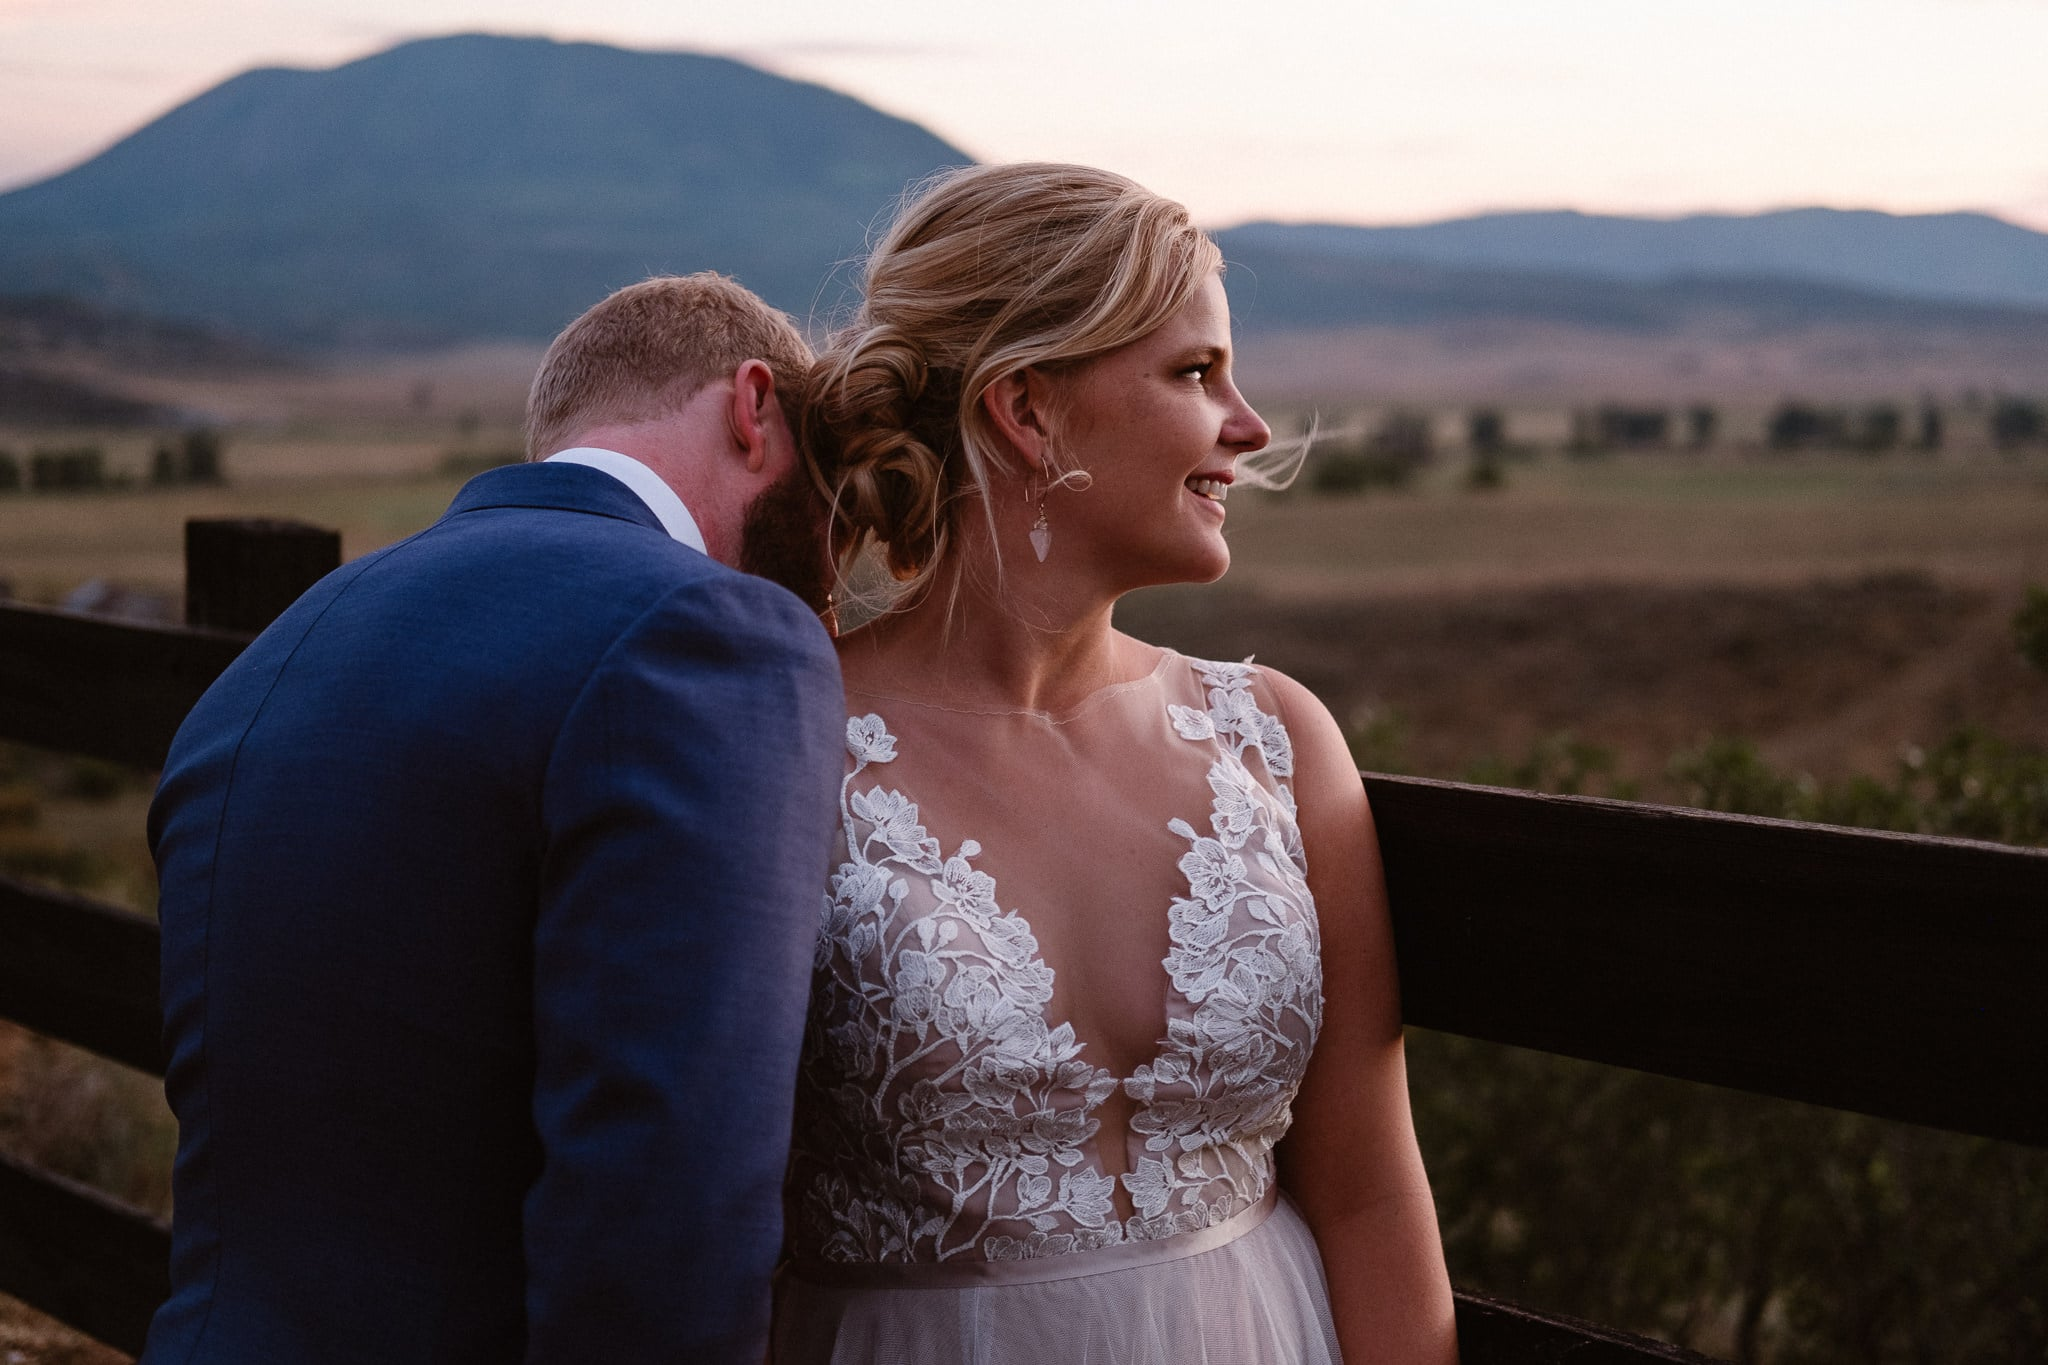 Steamboat Springs wedding photographer, La Joya Dulce wedding, Colorado ranch wedding venues, bridal portraits at sunset, bride with lace top wedding dress, groom kissing bride's neck